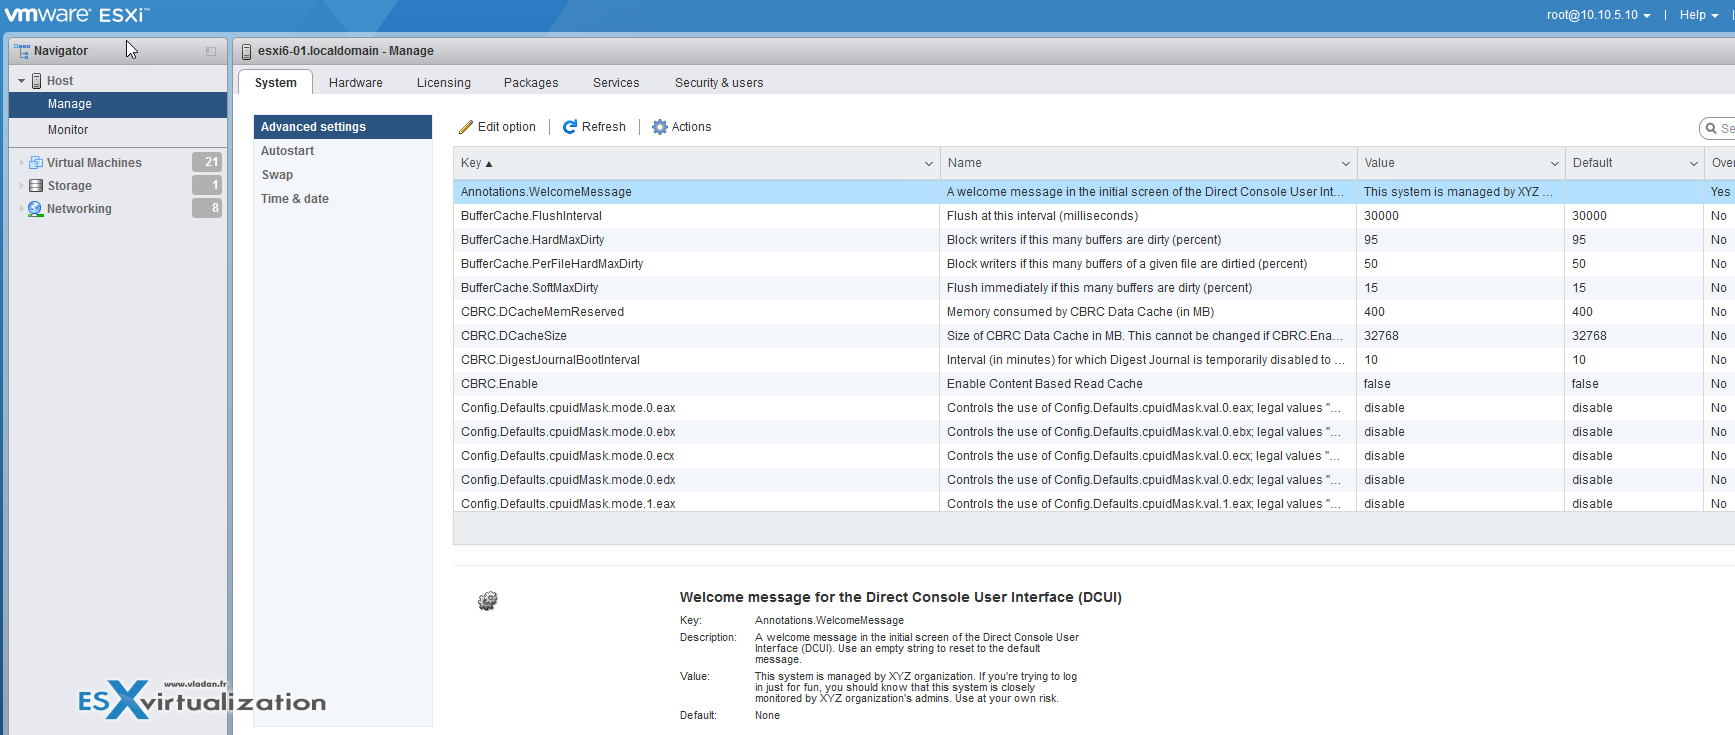 How-to Create a Security Banner for ESXi   ESX Virtualization